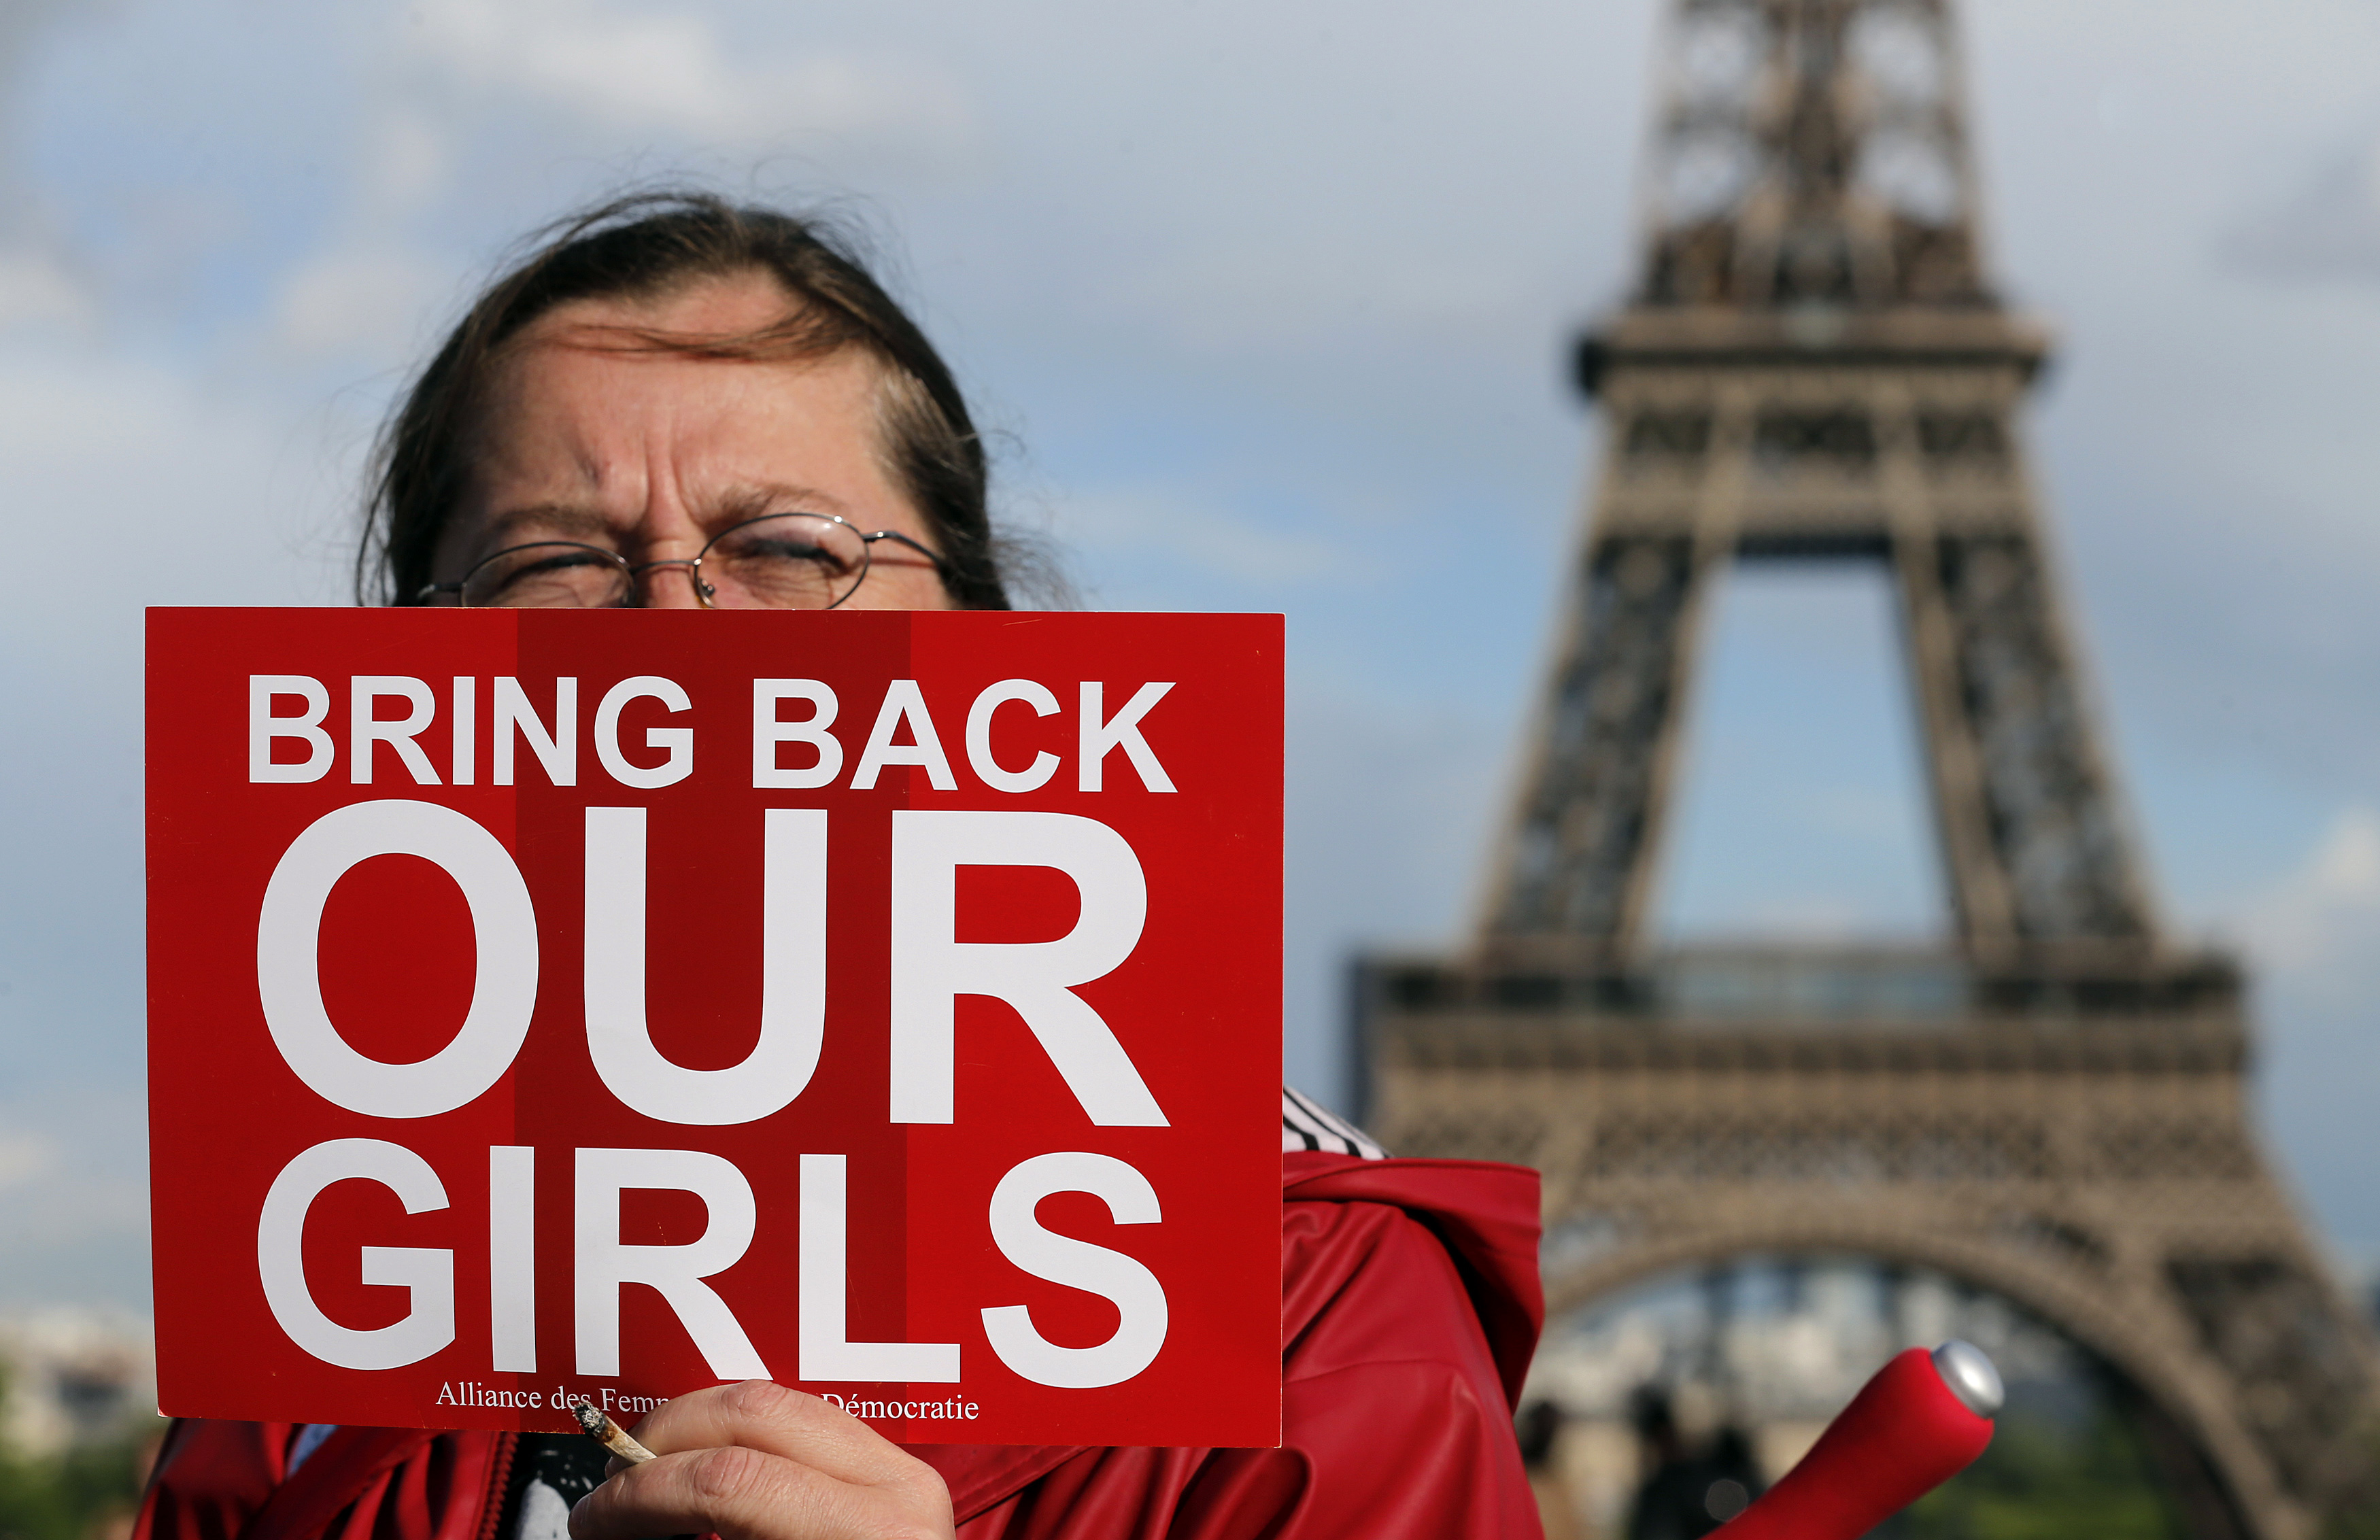 A protester at Trocadero Square near the Eiffel Tower in Paris demonstrates against  the kidnapping of school girls in Nigeria.